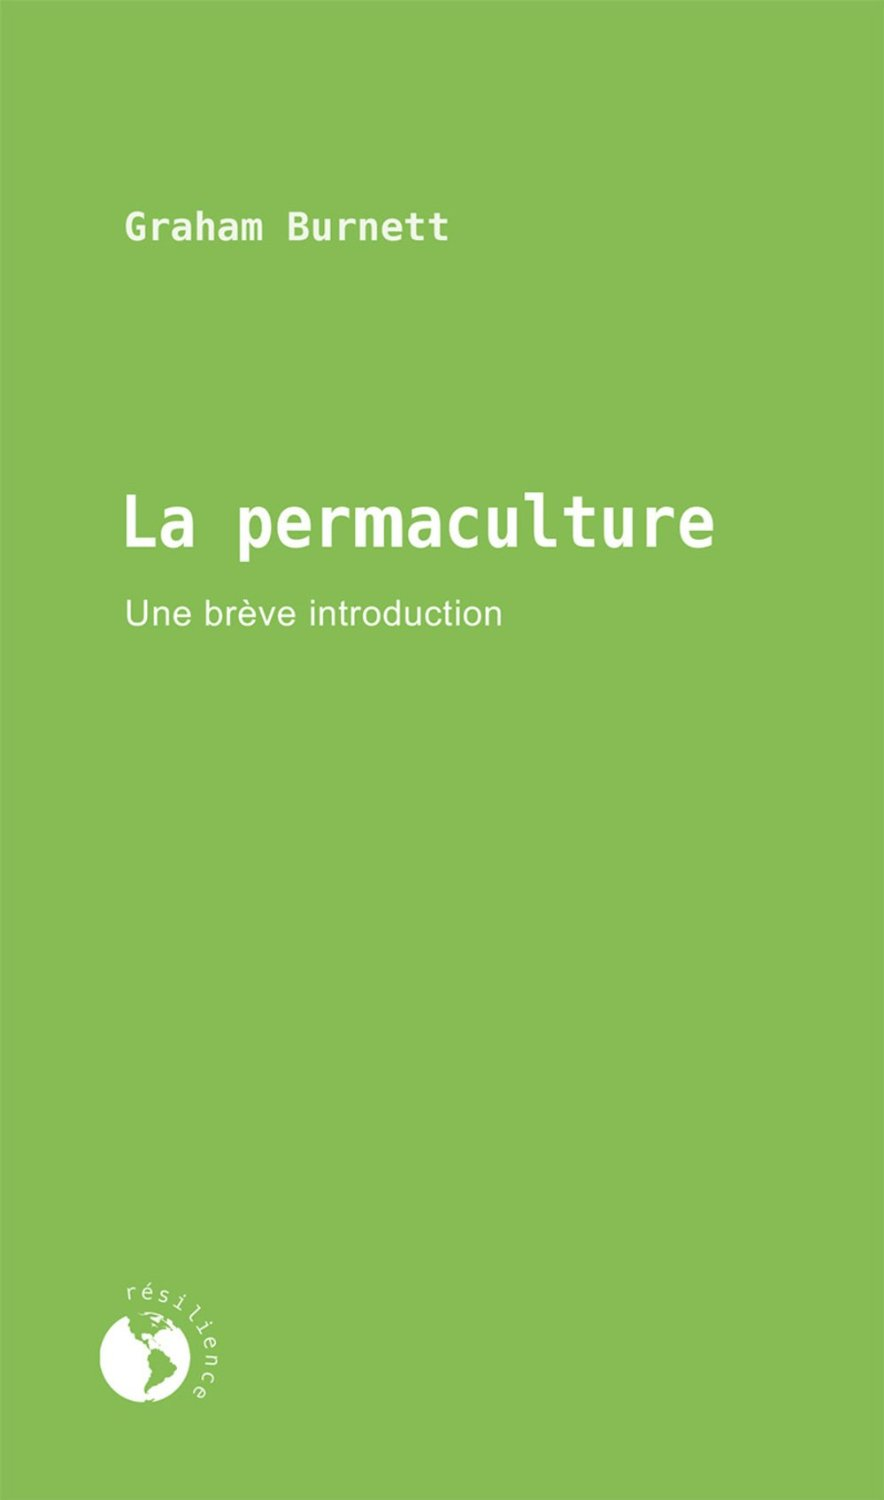 La permaculture_une brève introduction.jpg